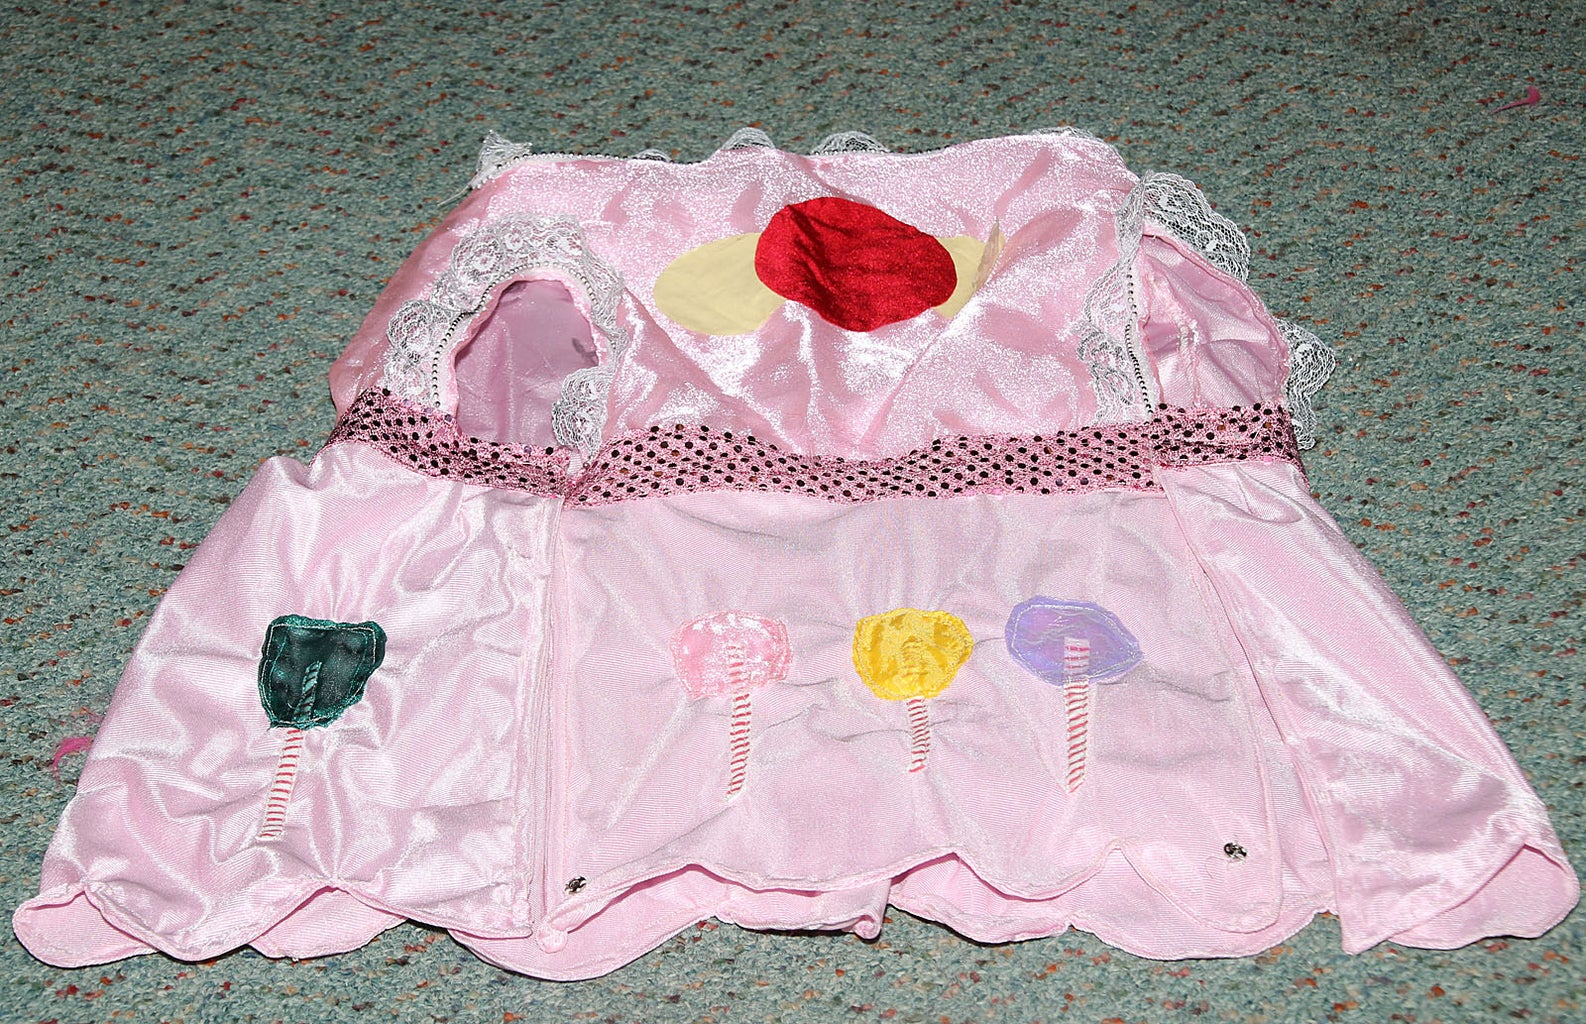 MAKING THE PRINCESS LOLLY DRESS